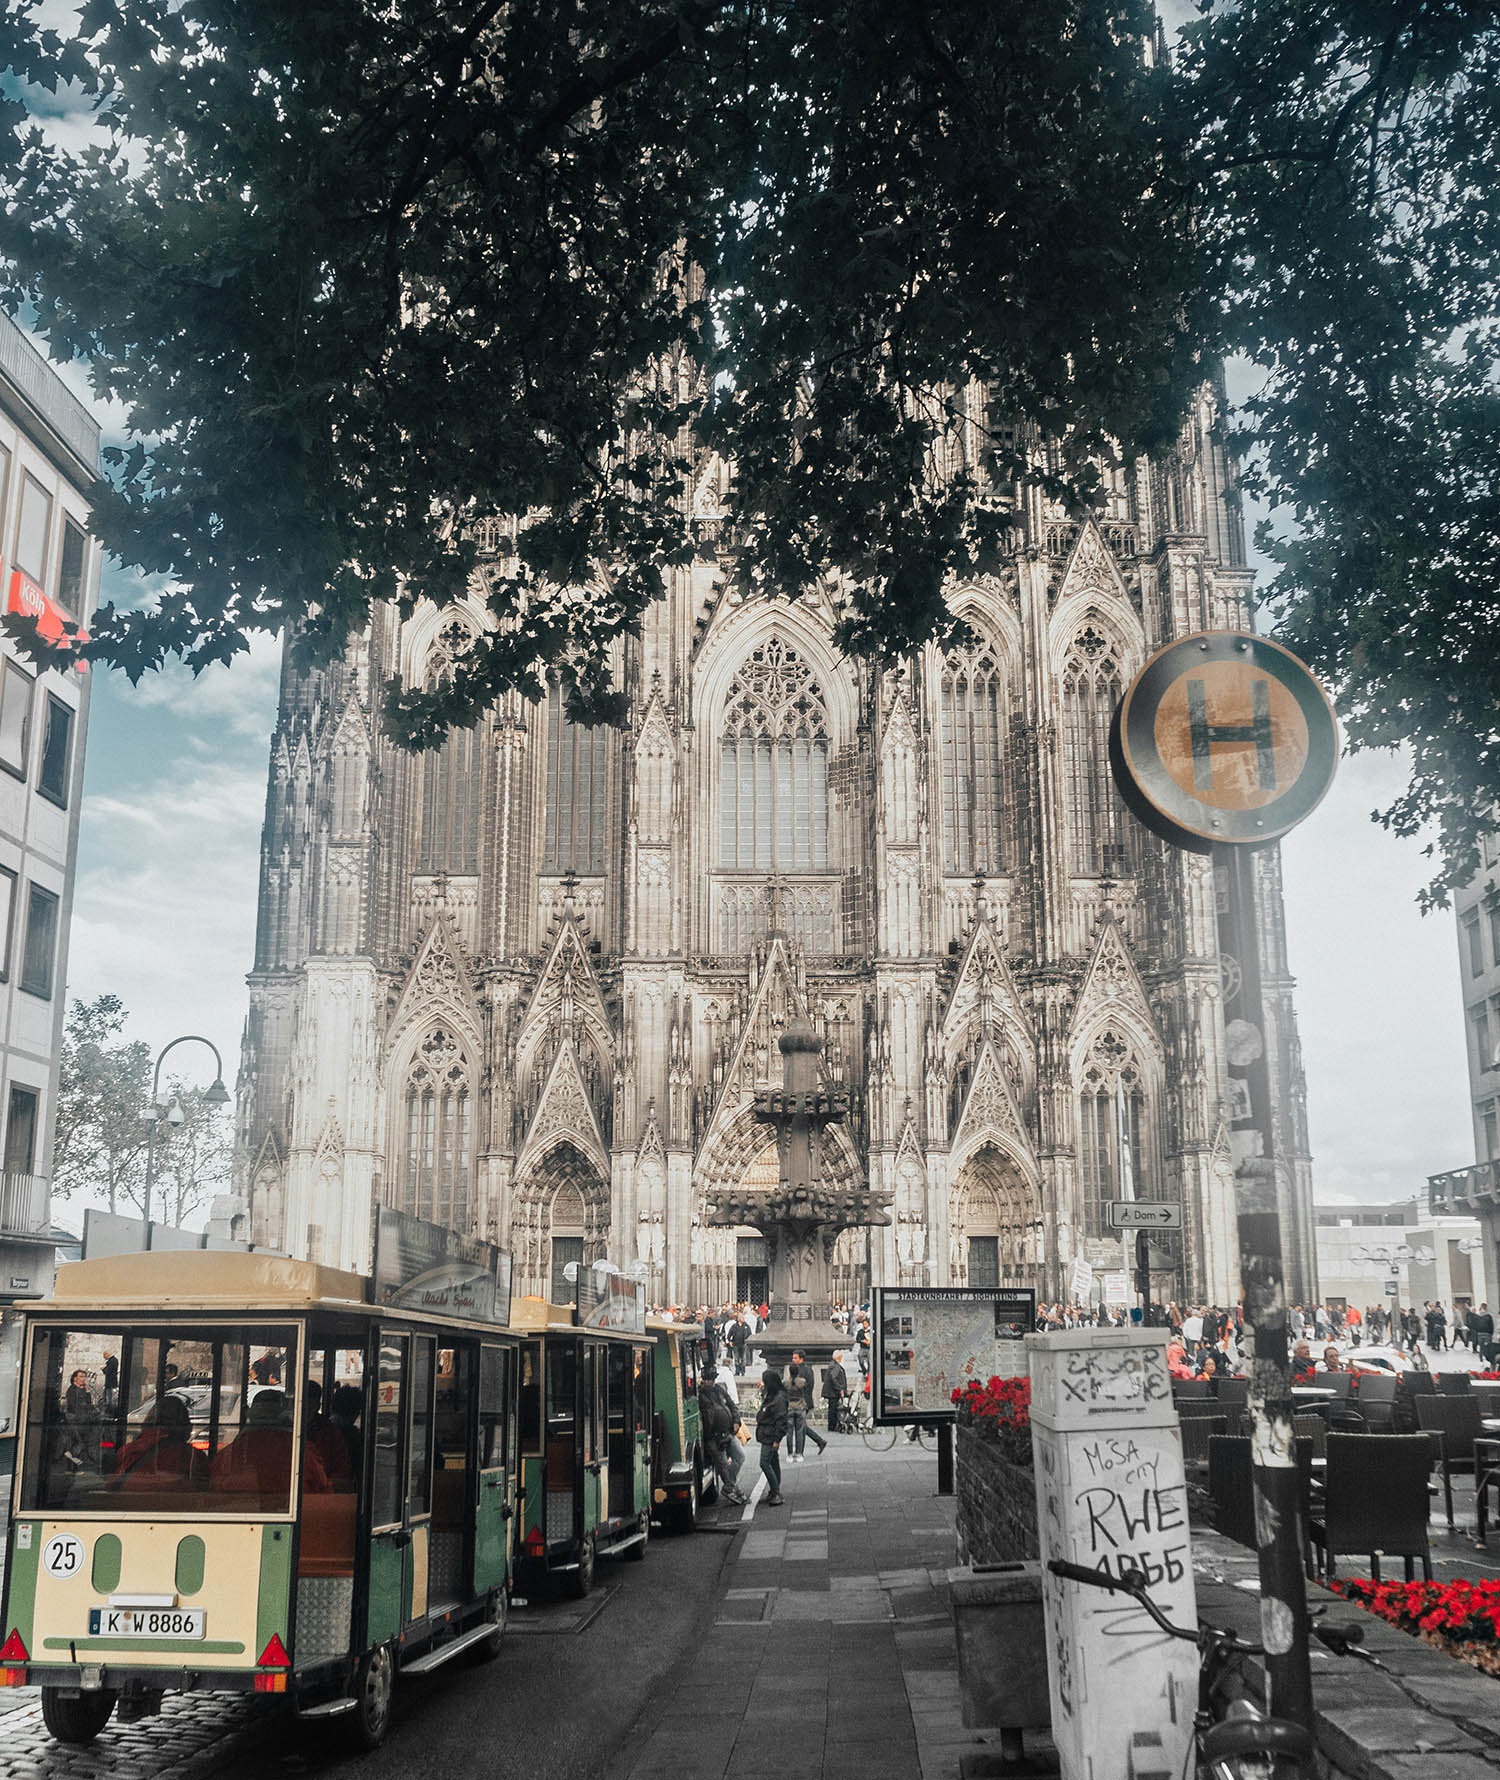 Street in front of Cologne Cathedral in Germany